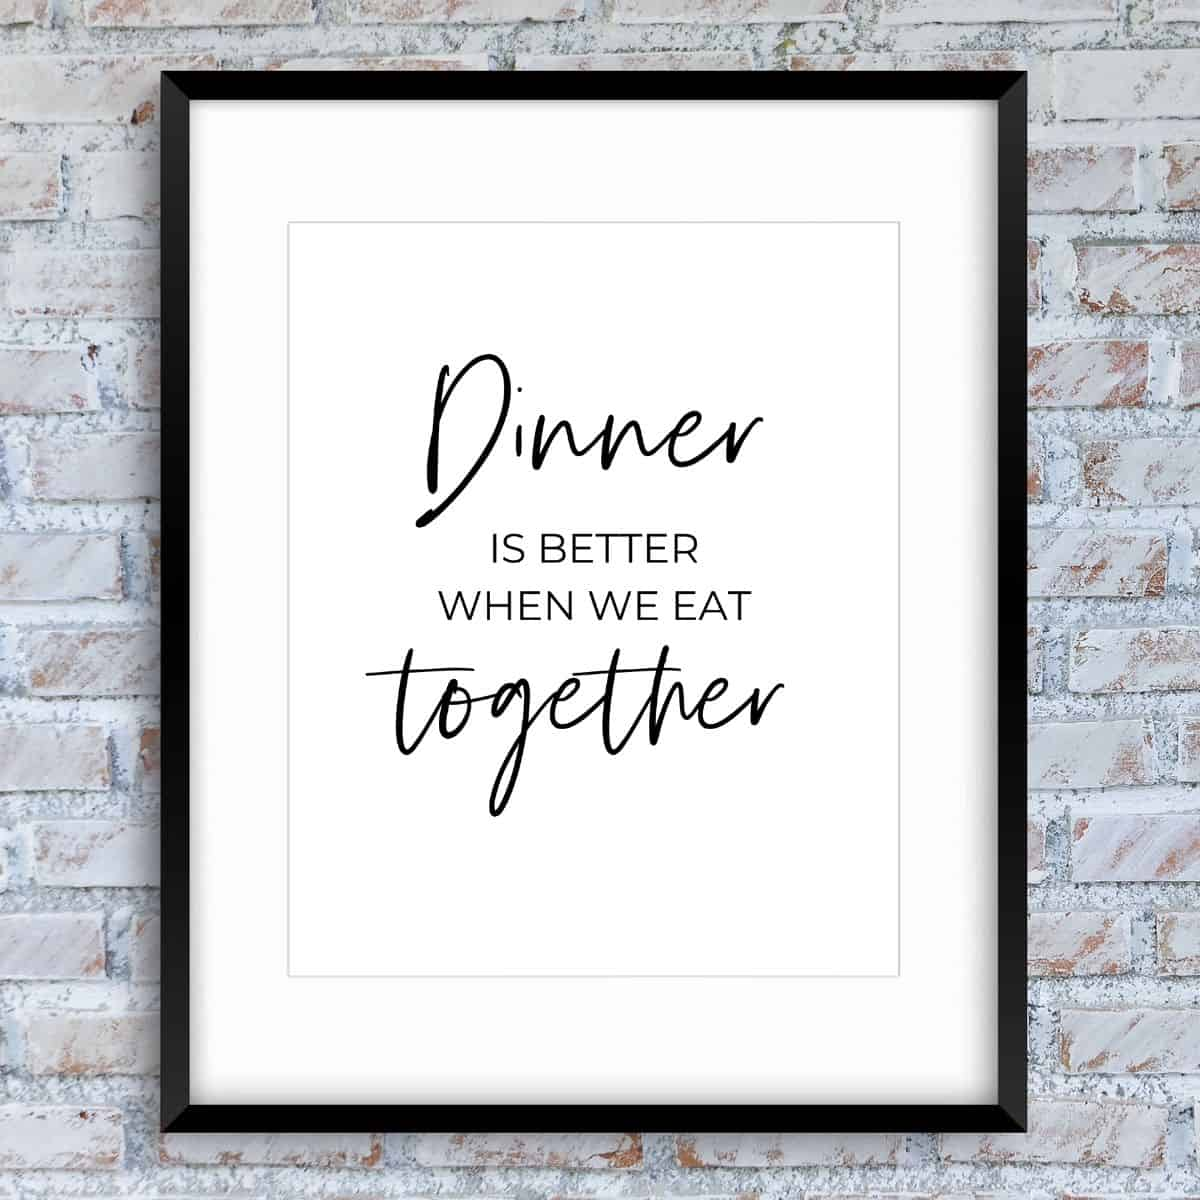 Black frame on the brick wall with the text: Dinner is better when we eat together